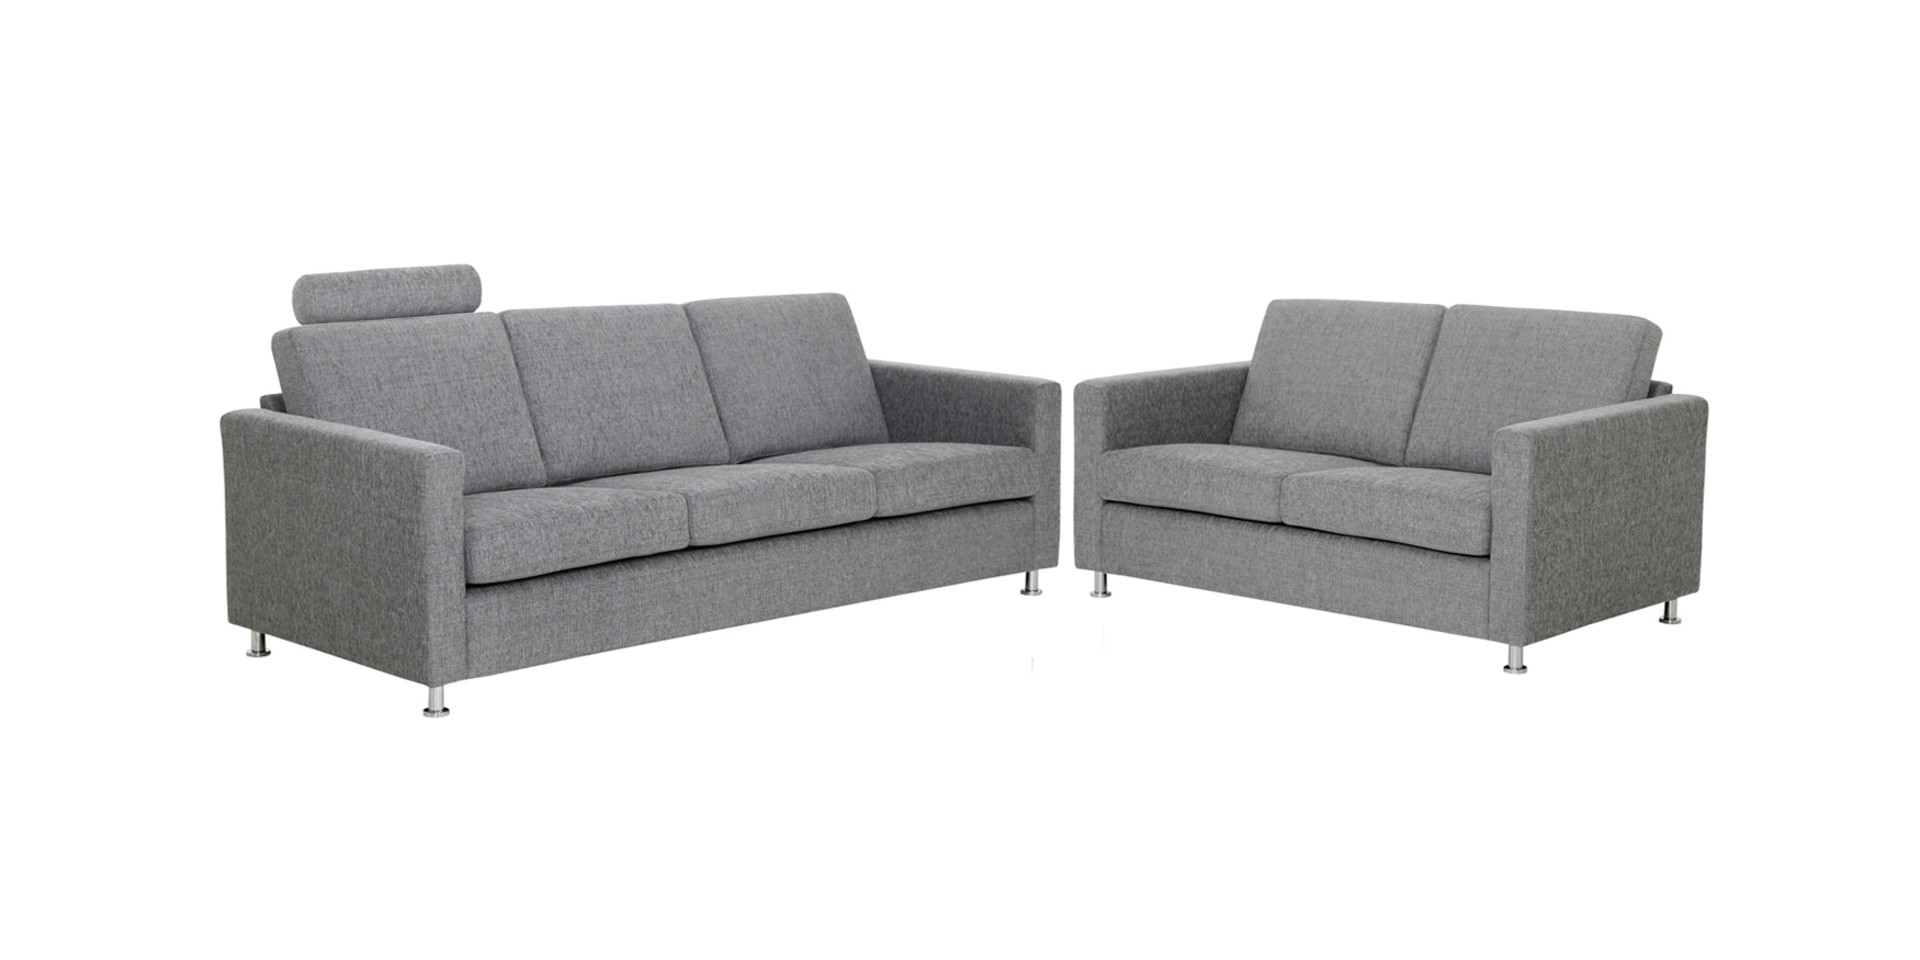 sits-palma-canape-2seater_3seater_headrest_veraam1c9grey_3